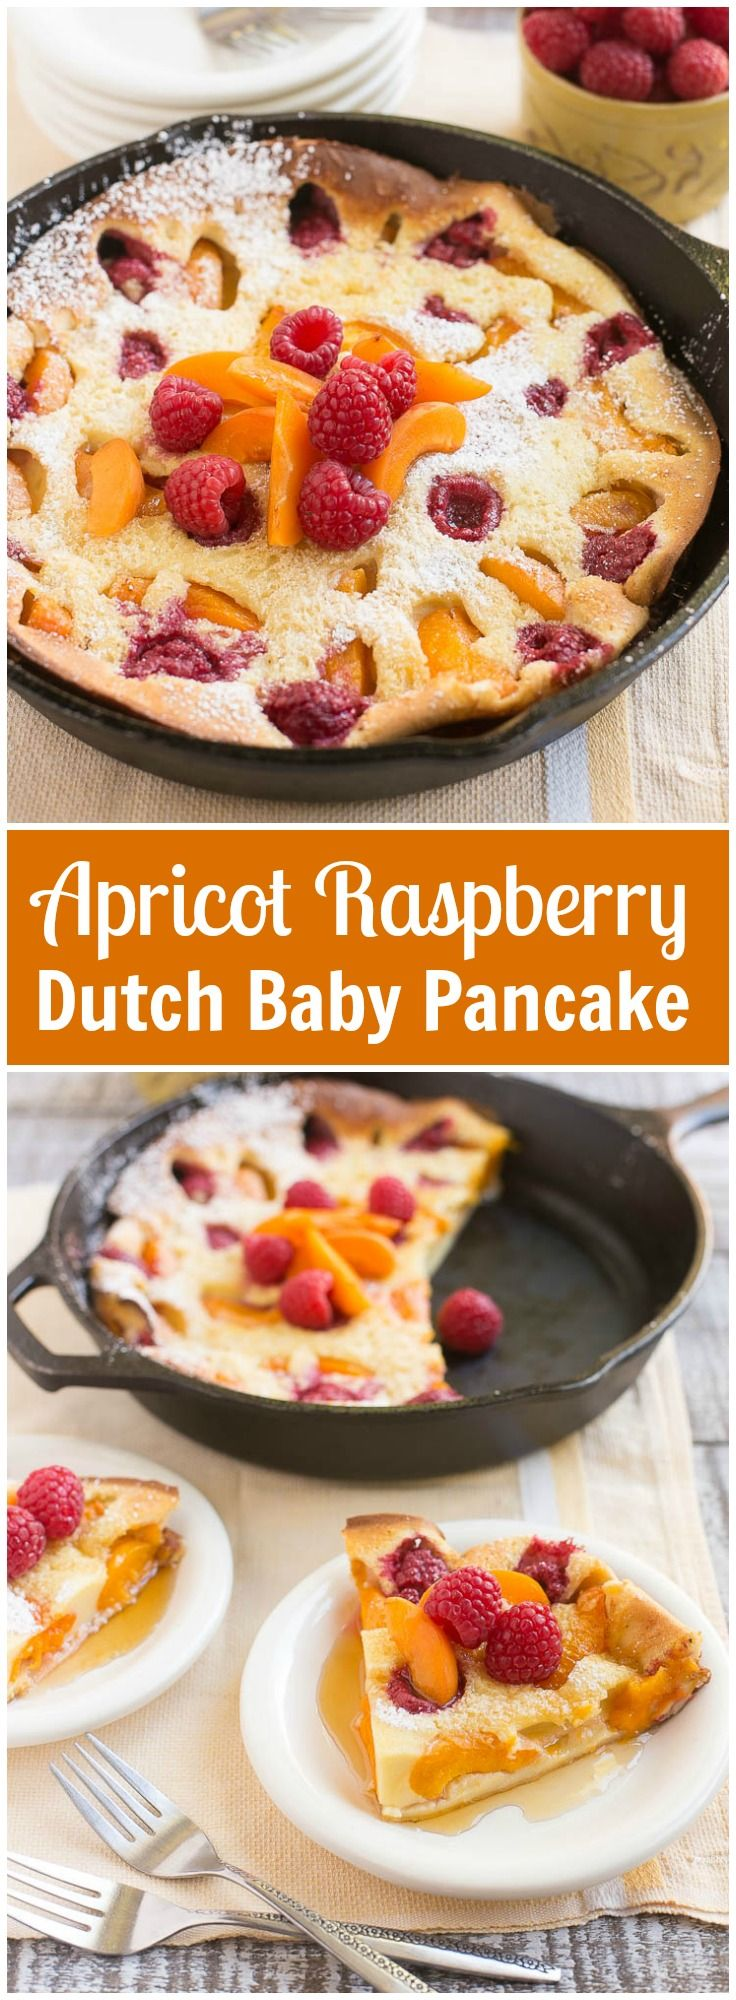 This giant apricot raspberry dutch baby pancake bakes in the oven and is a showstopping addition to your breakfast or brunch - no flipping required!